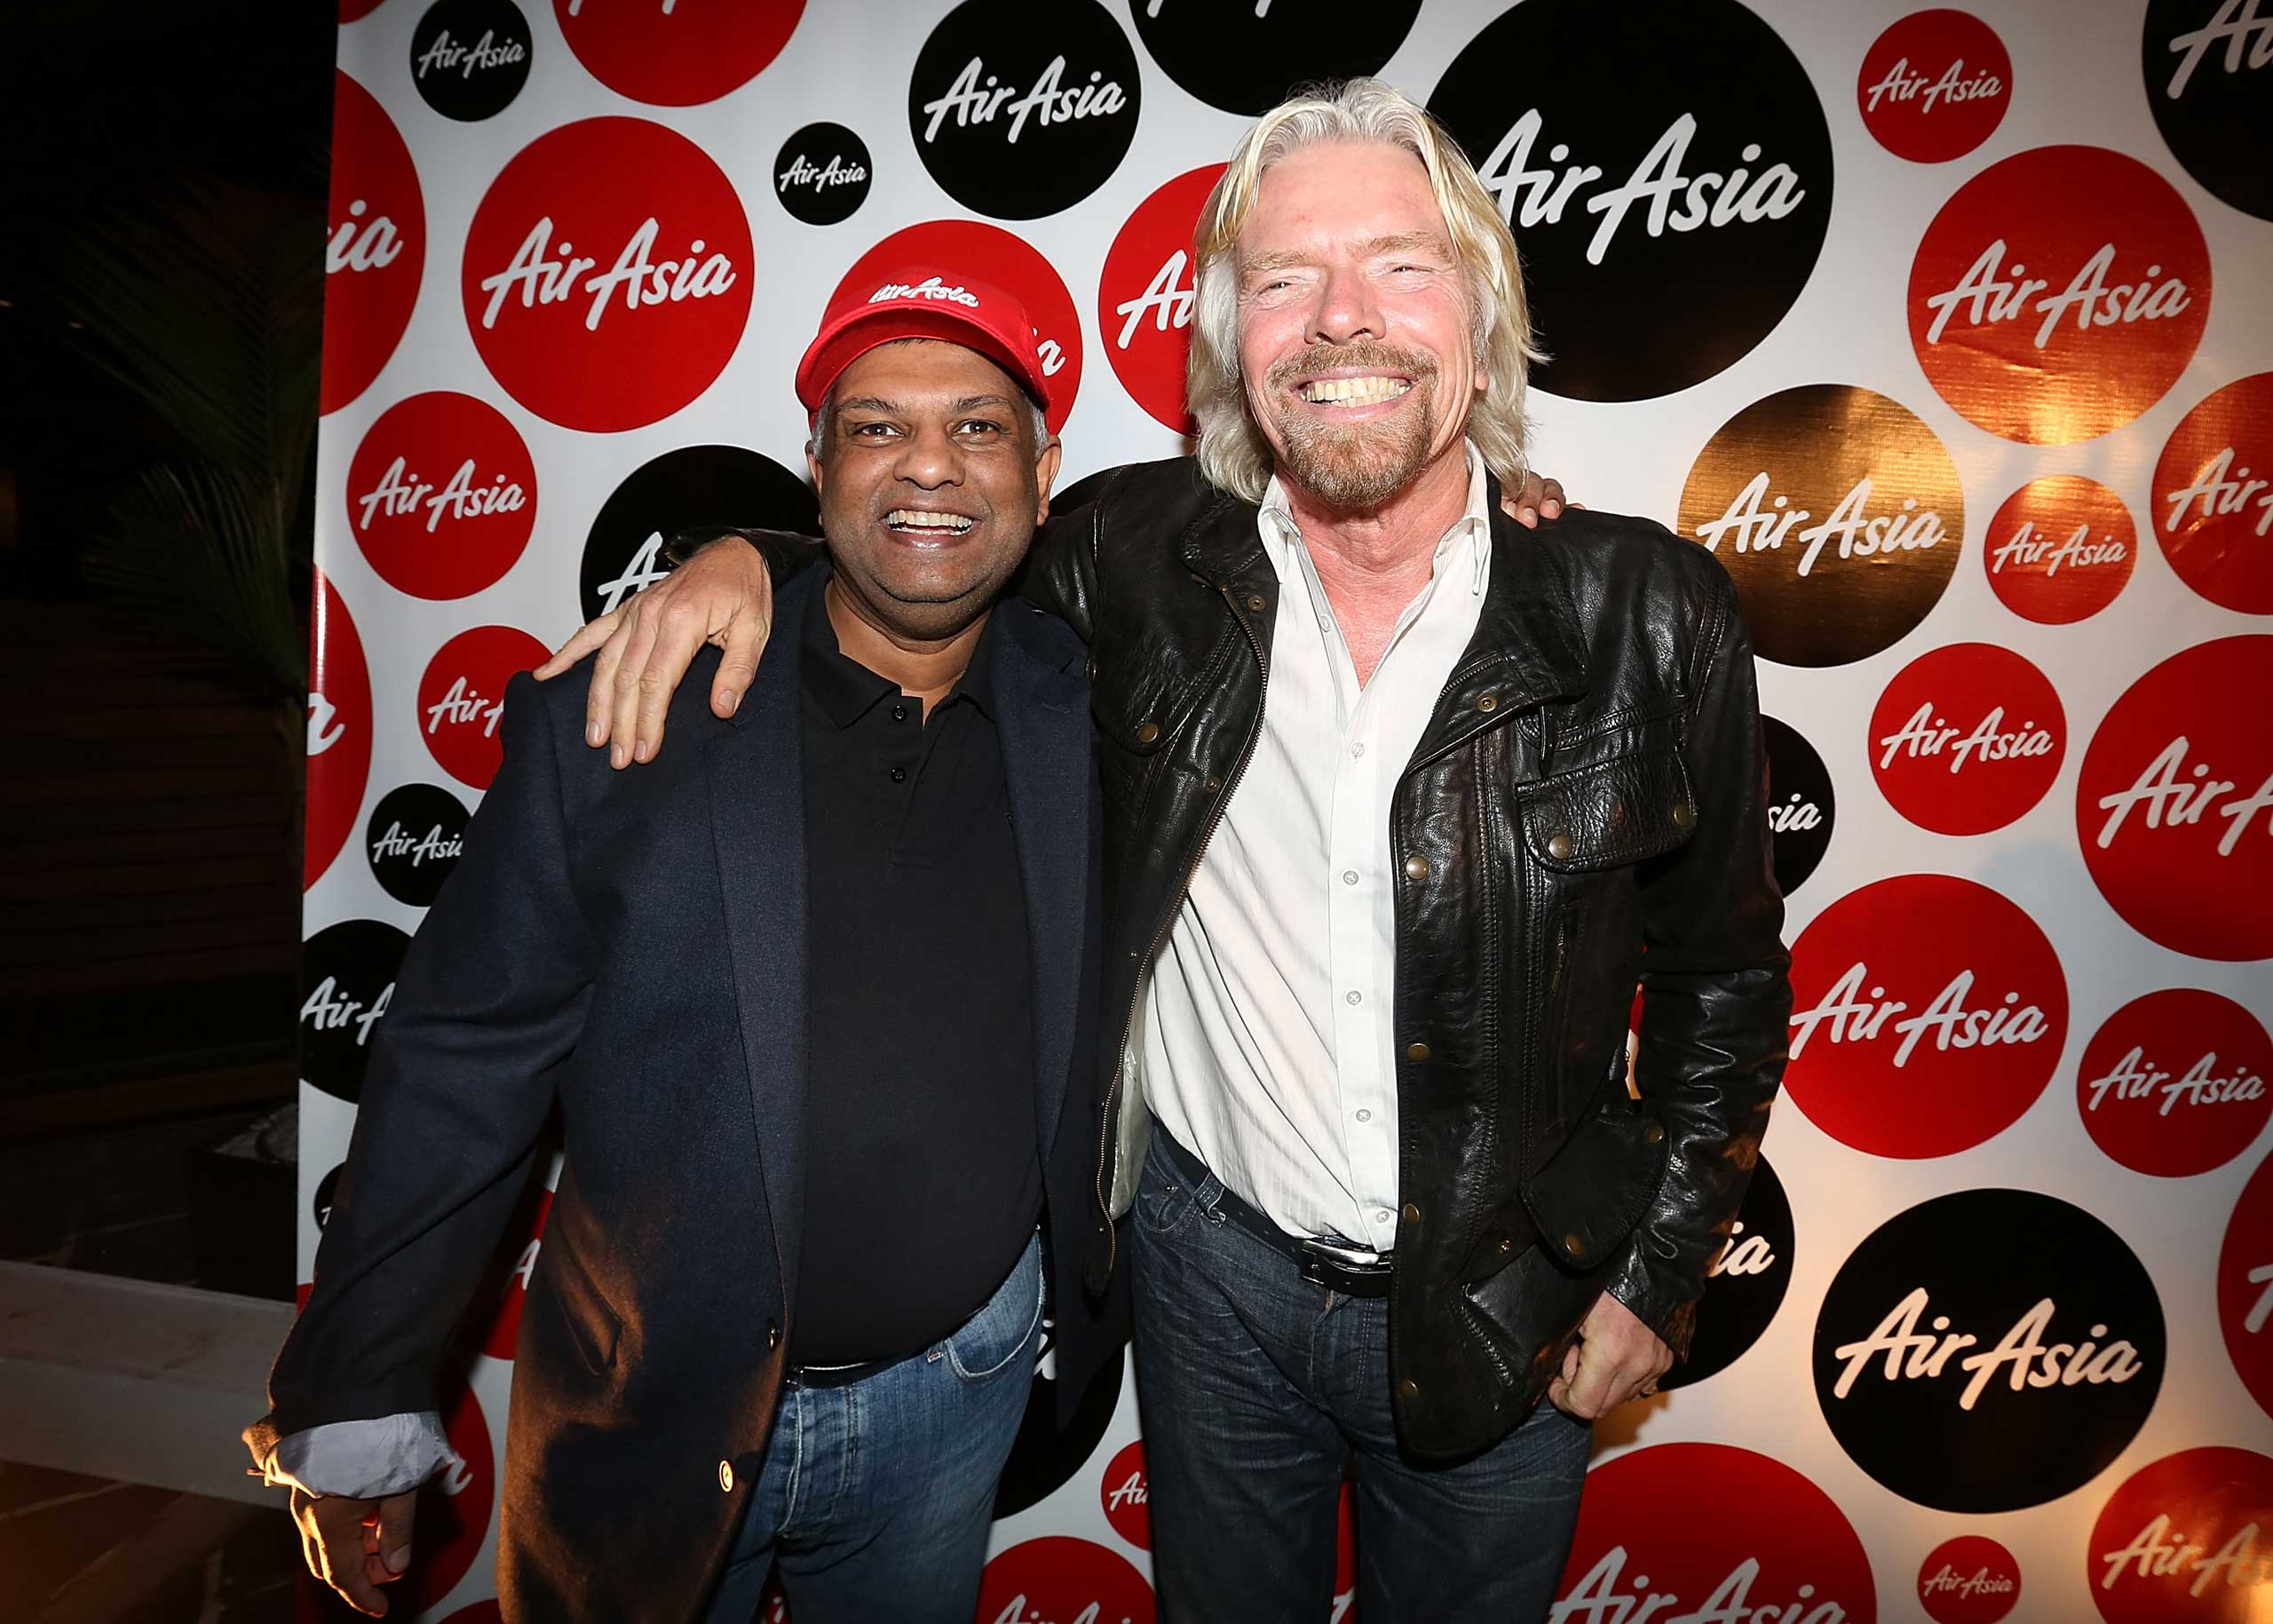 Fernandes and Sir Richard Branson at an AirAsia Cocktail Party in Perth, Australia, May 11, 2013. Fernandes' public persona has often been likened to that of Branson--and the two are in fact friends. Branson dressed as an AirAsia flight attendant after losing a bet with Fernandes on which of their 2010 Formula One racing car teams would finish ahead of the other.